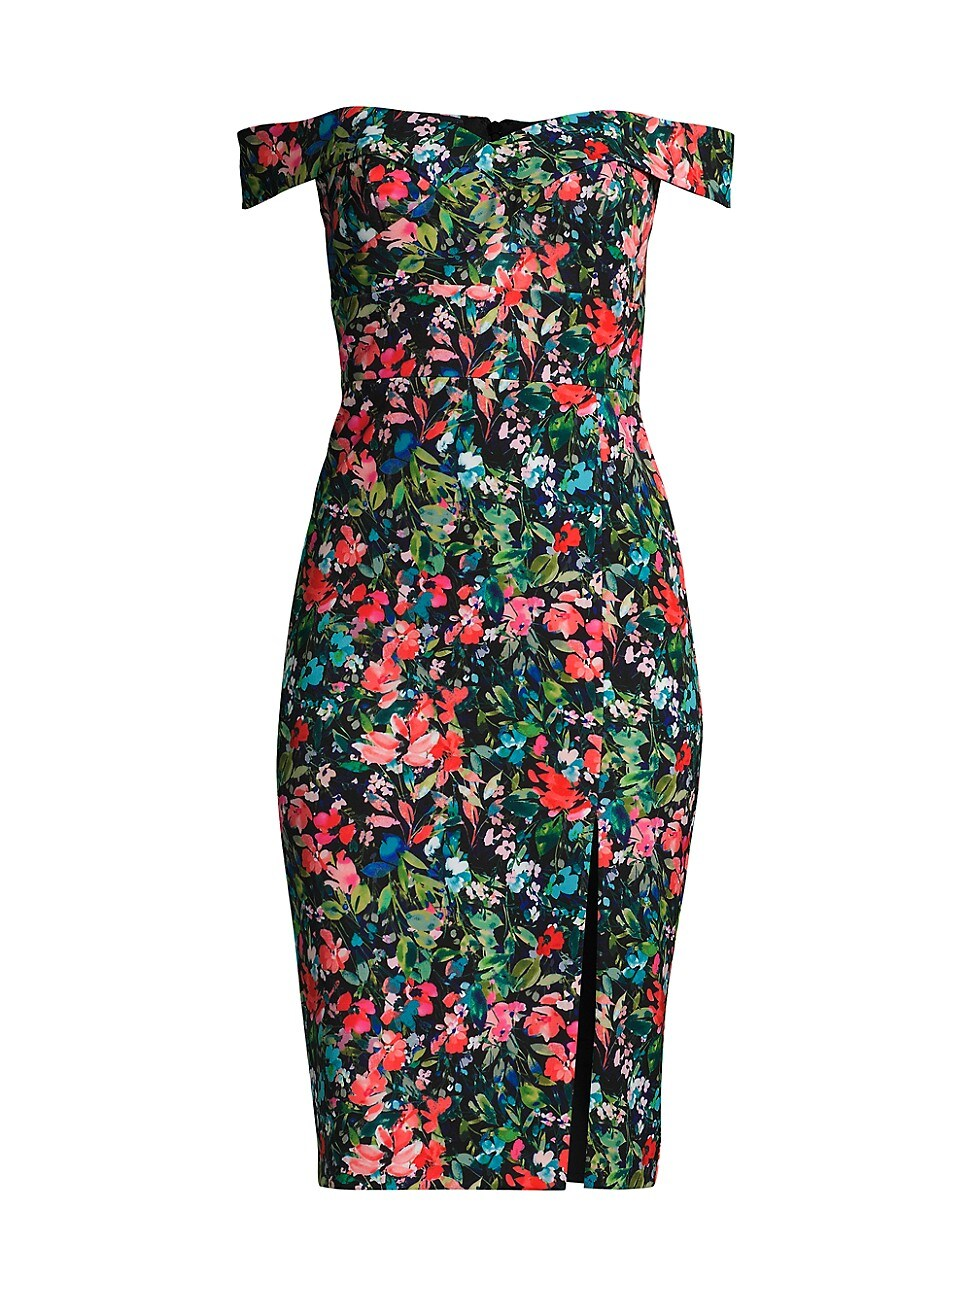 Aidan Mattox WOMEN'S FLORAL OFF-THE-SHOULDER CREPE SHEATH DRESS